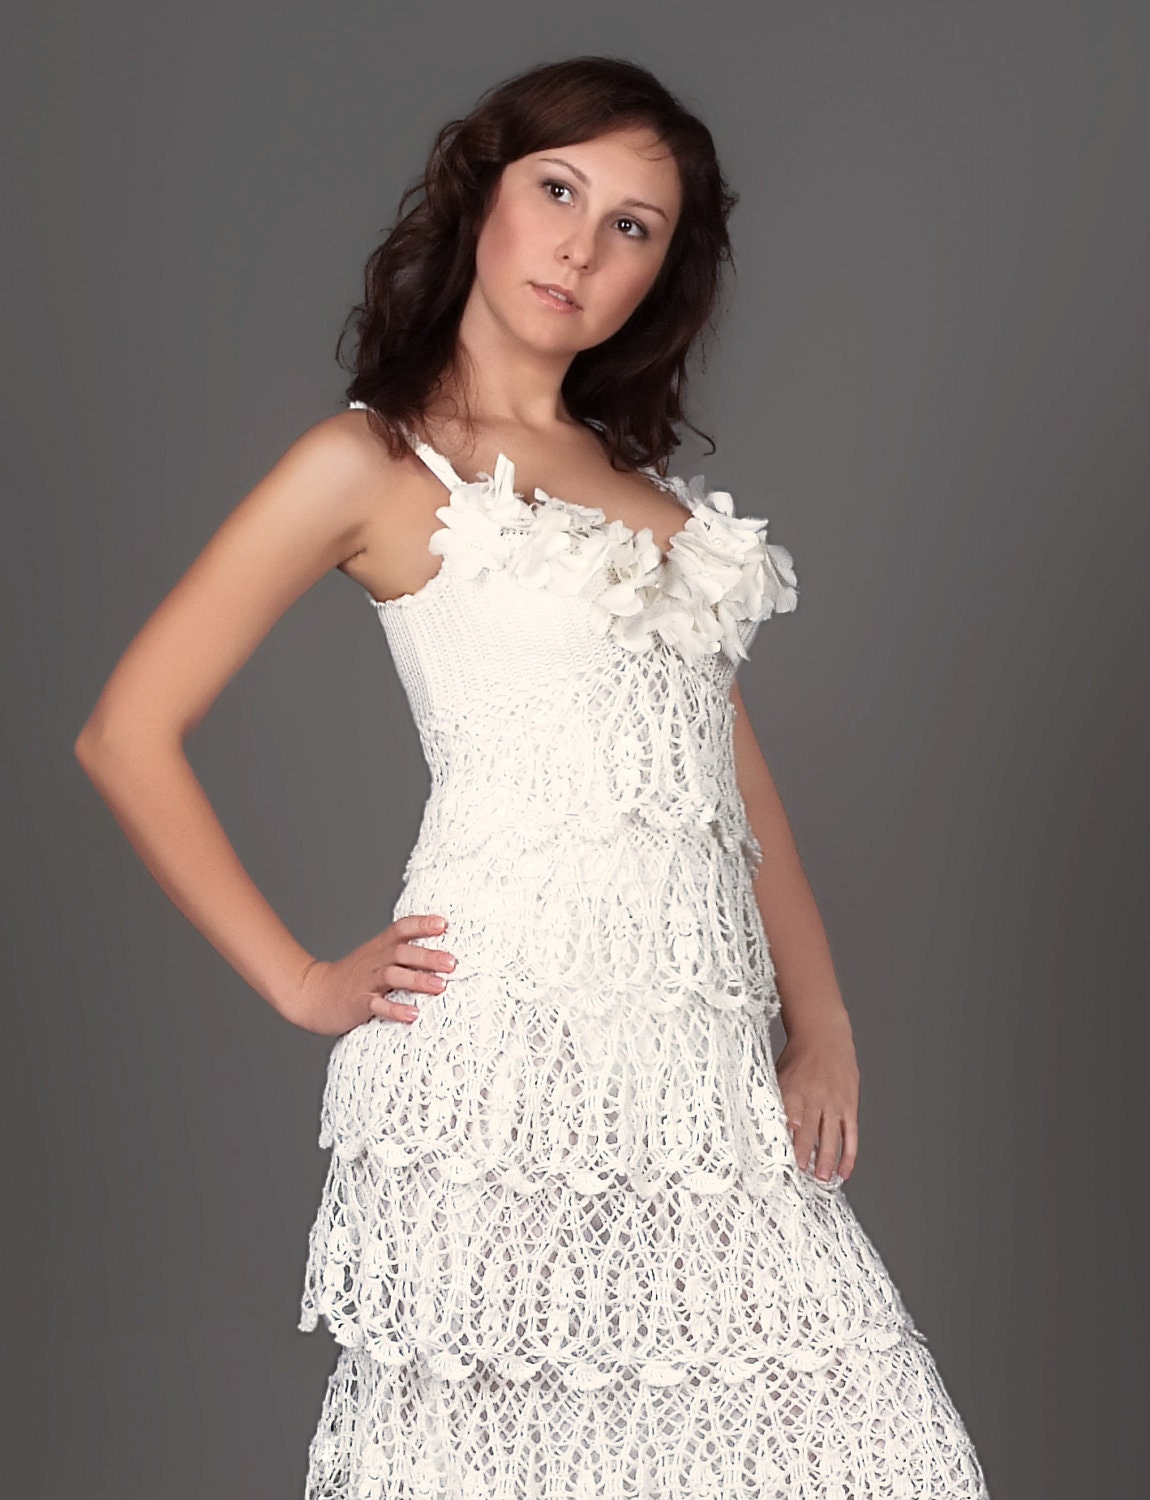 Crochet Dress : CROCHET FASHION TRENDS exclusive crochet wedding by LecrochetArt